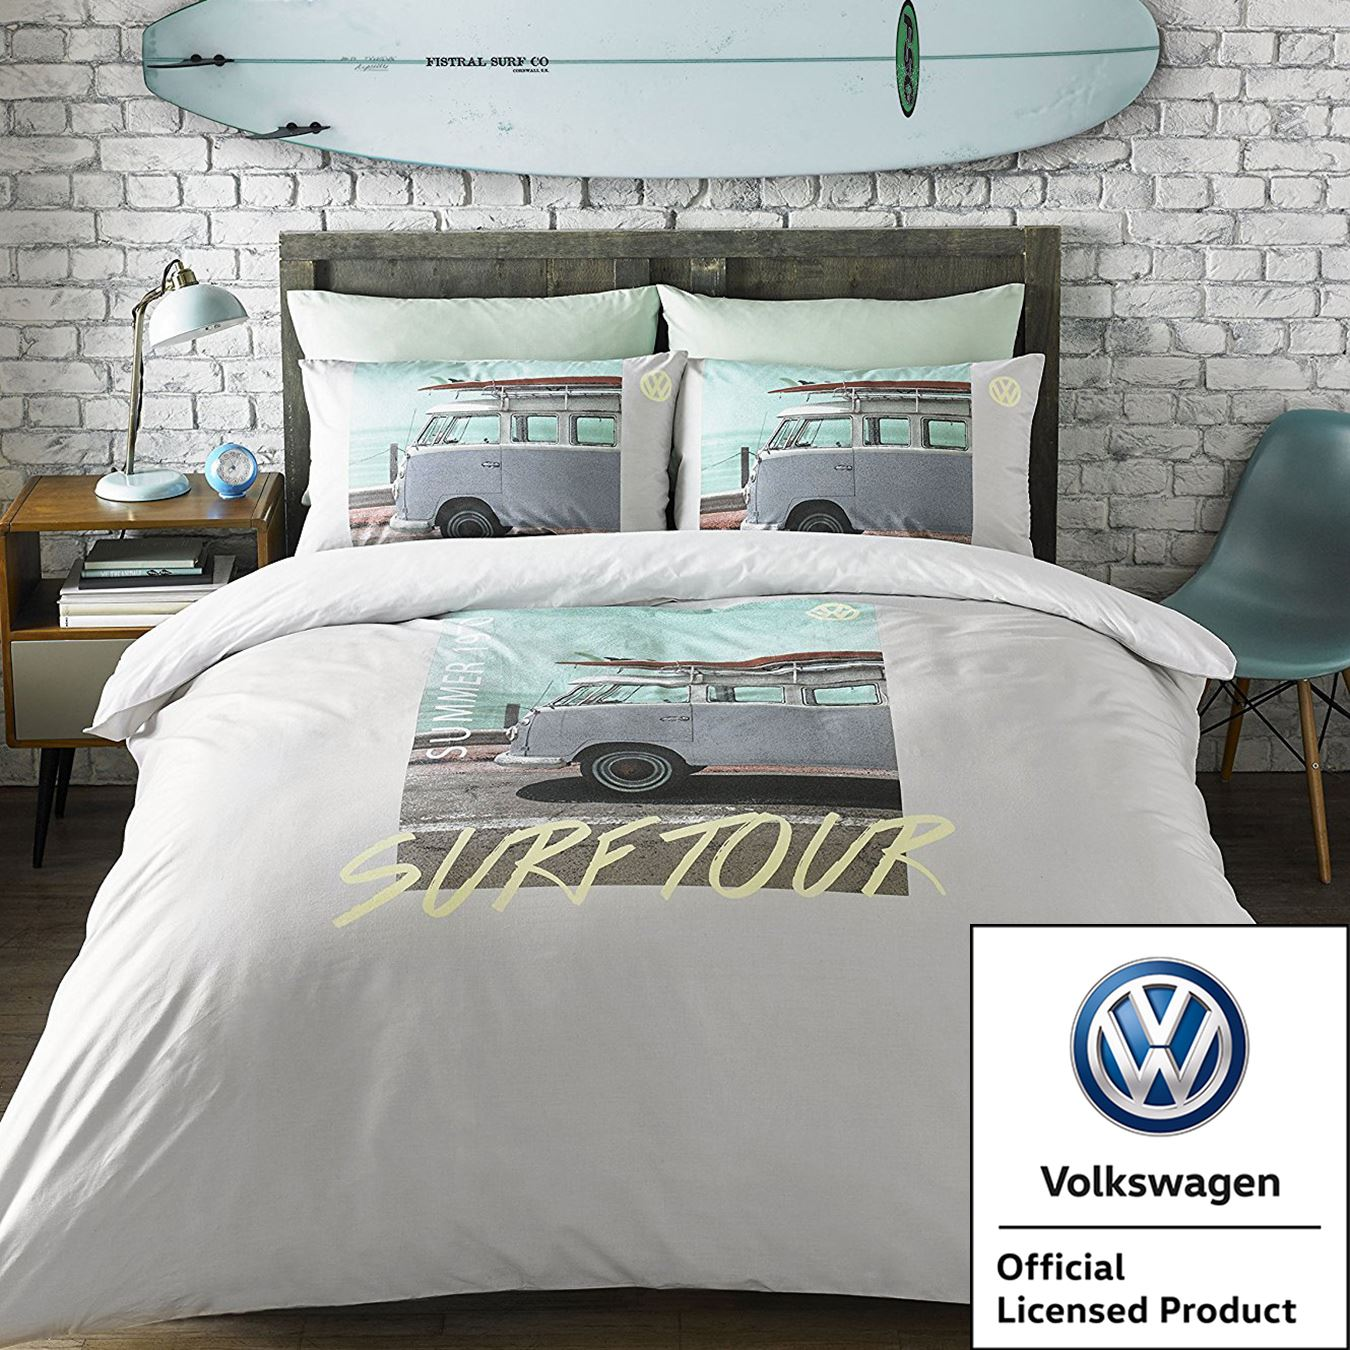 VW VOLKSWAGEN CAMPERVAN DUVET COVER SETS RETRO CAR BEDDING